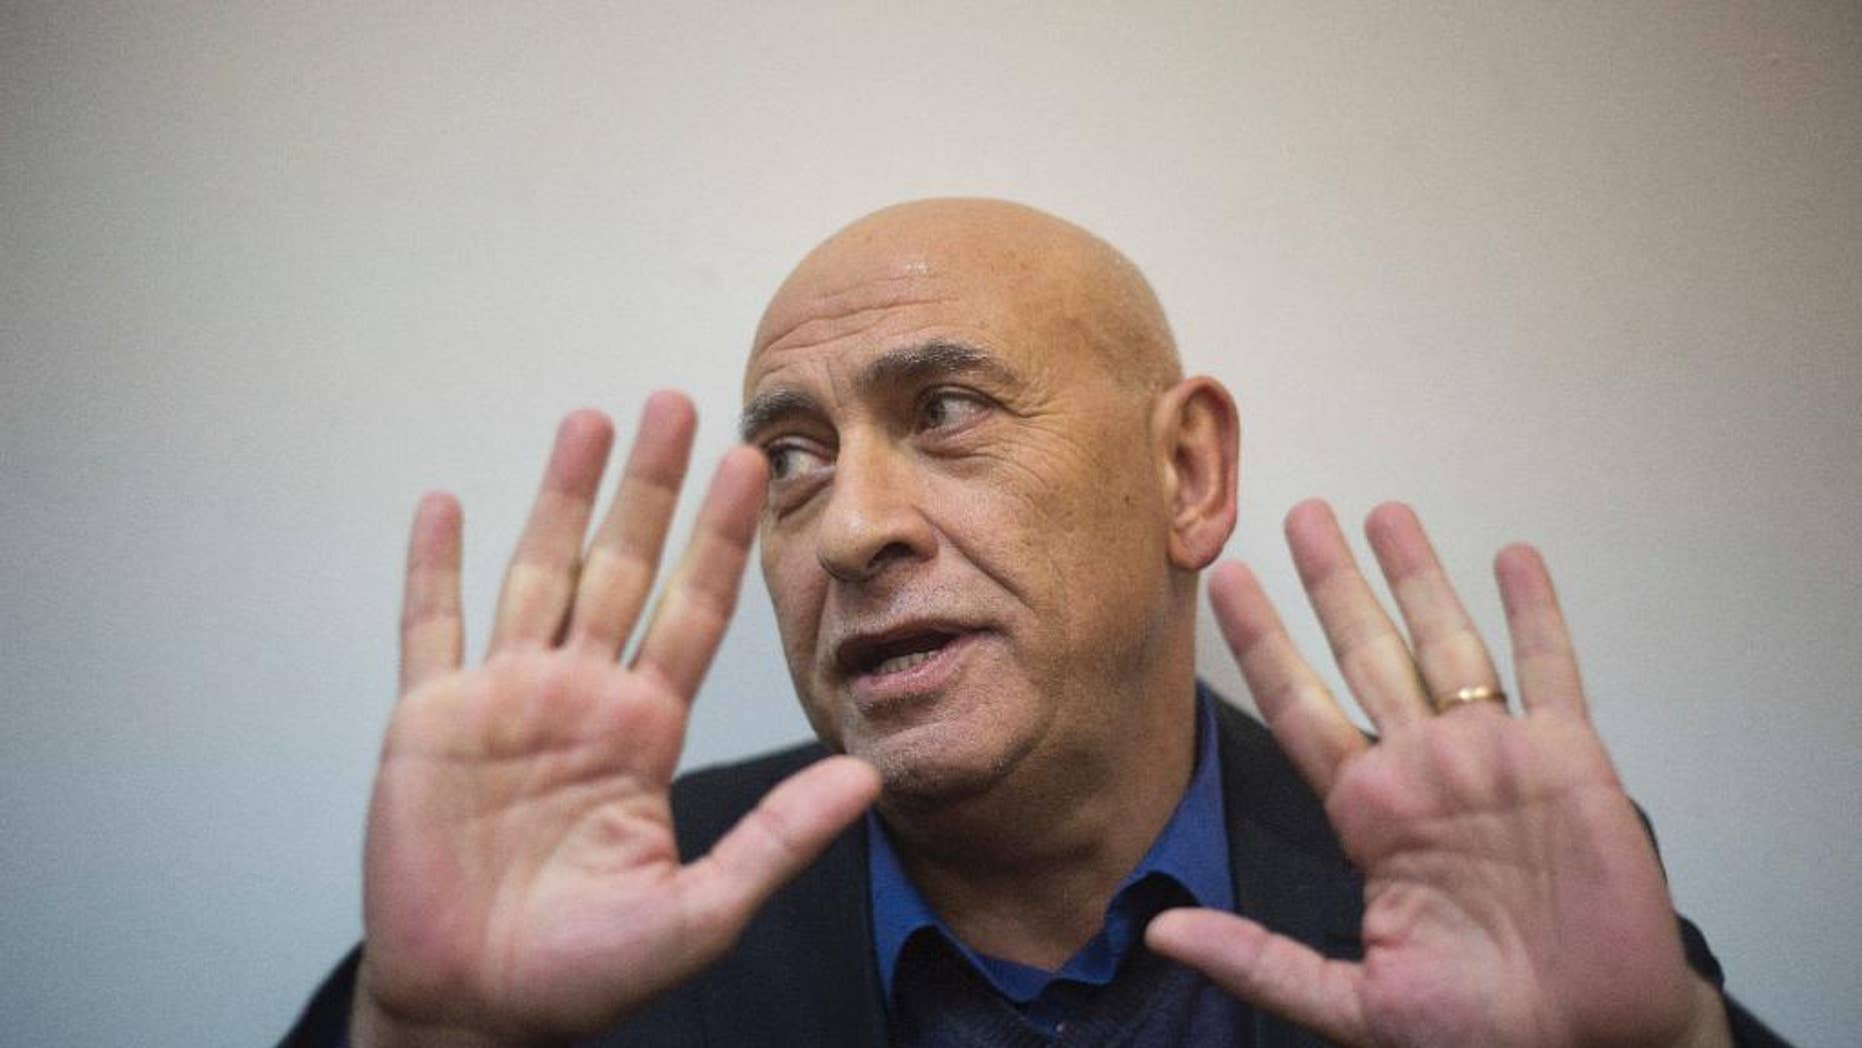 FILE -- This Dec. 26, 2016 file photo, shows Arab Israeli lawmaker Basel Ghattas in a magistrate court, in Rishon Lezion, Israel. Ghattas, a former Arab lawmaker has been sentenced to two years in prison after admitting to smuggling cellphones to Palestinian prisoners held by Israel. An Israeli court on Sunday accepted a plea bargain between Basel Ghattas and prosecutors. As part of the deal, Ghattas, a member of the Joint List of Arab parties, agreed to resign from parliament last month. (AP Photo/Ariel Schalit, File)